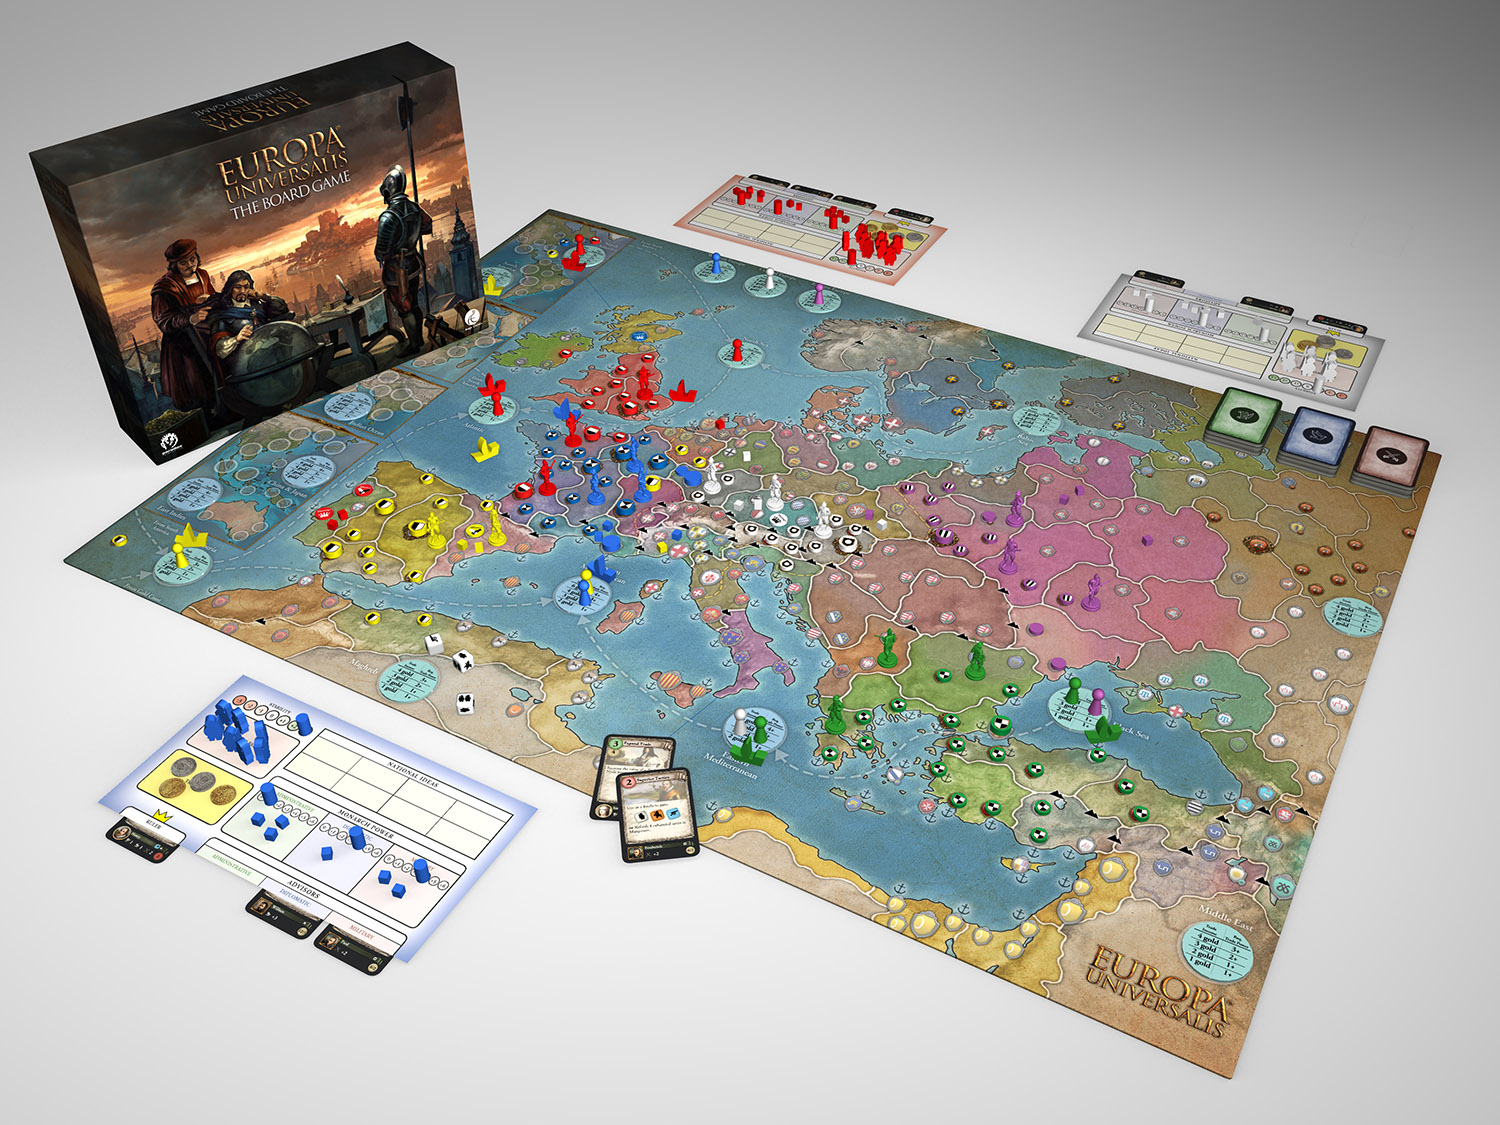 Europa Universalis board game 3D rendered image